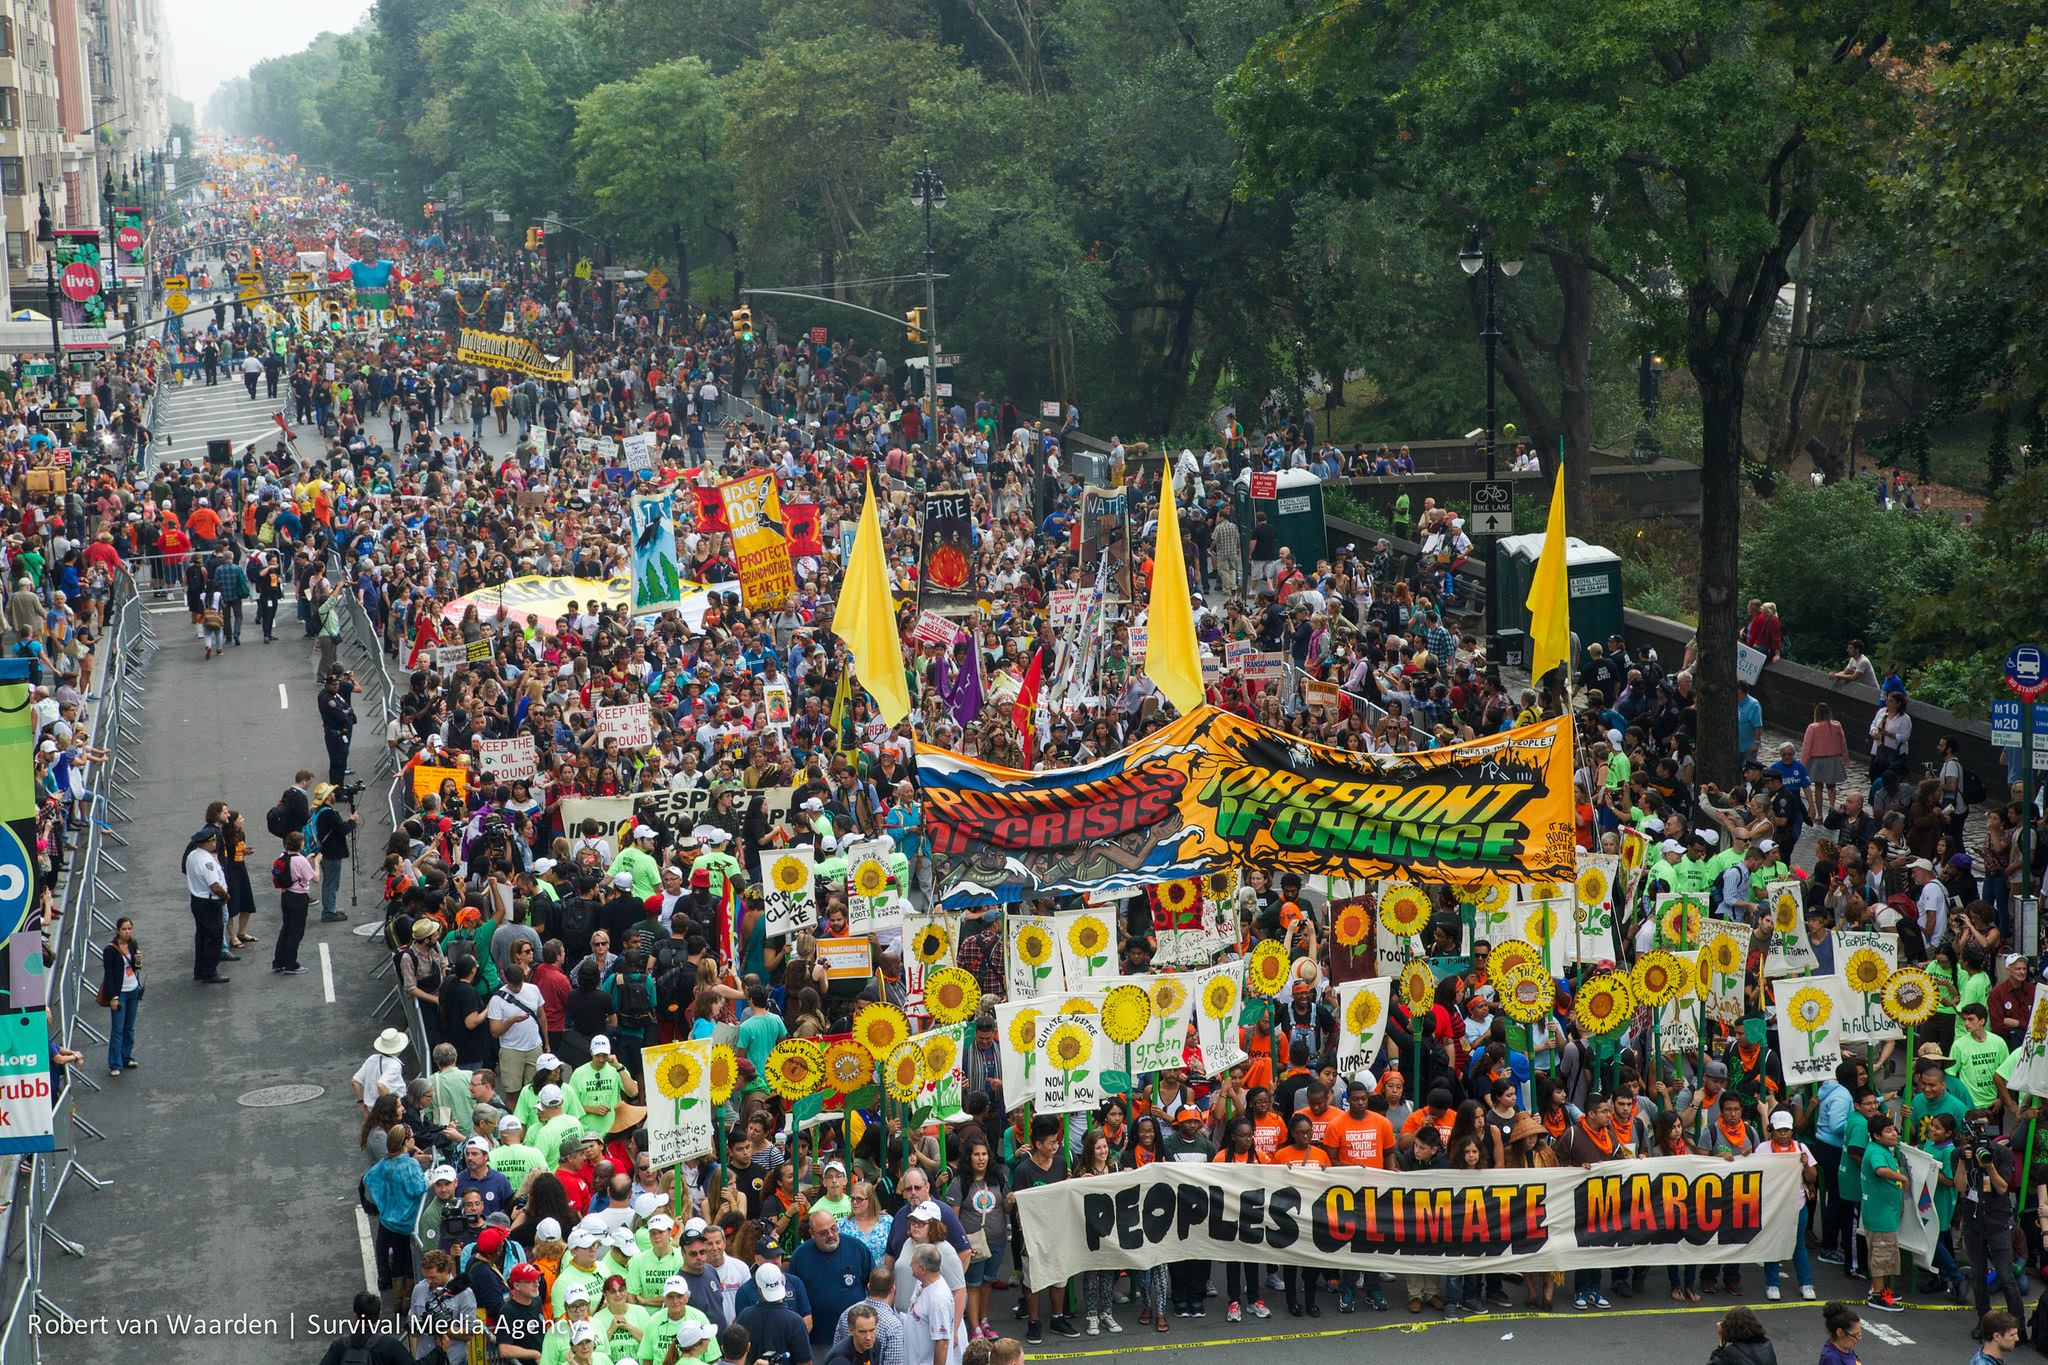 Photo: People's Climate March Facebook